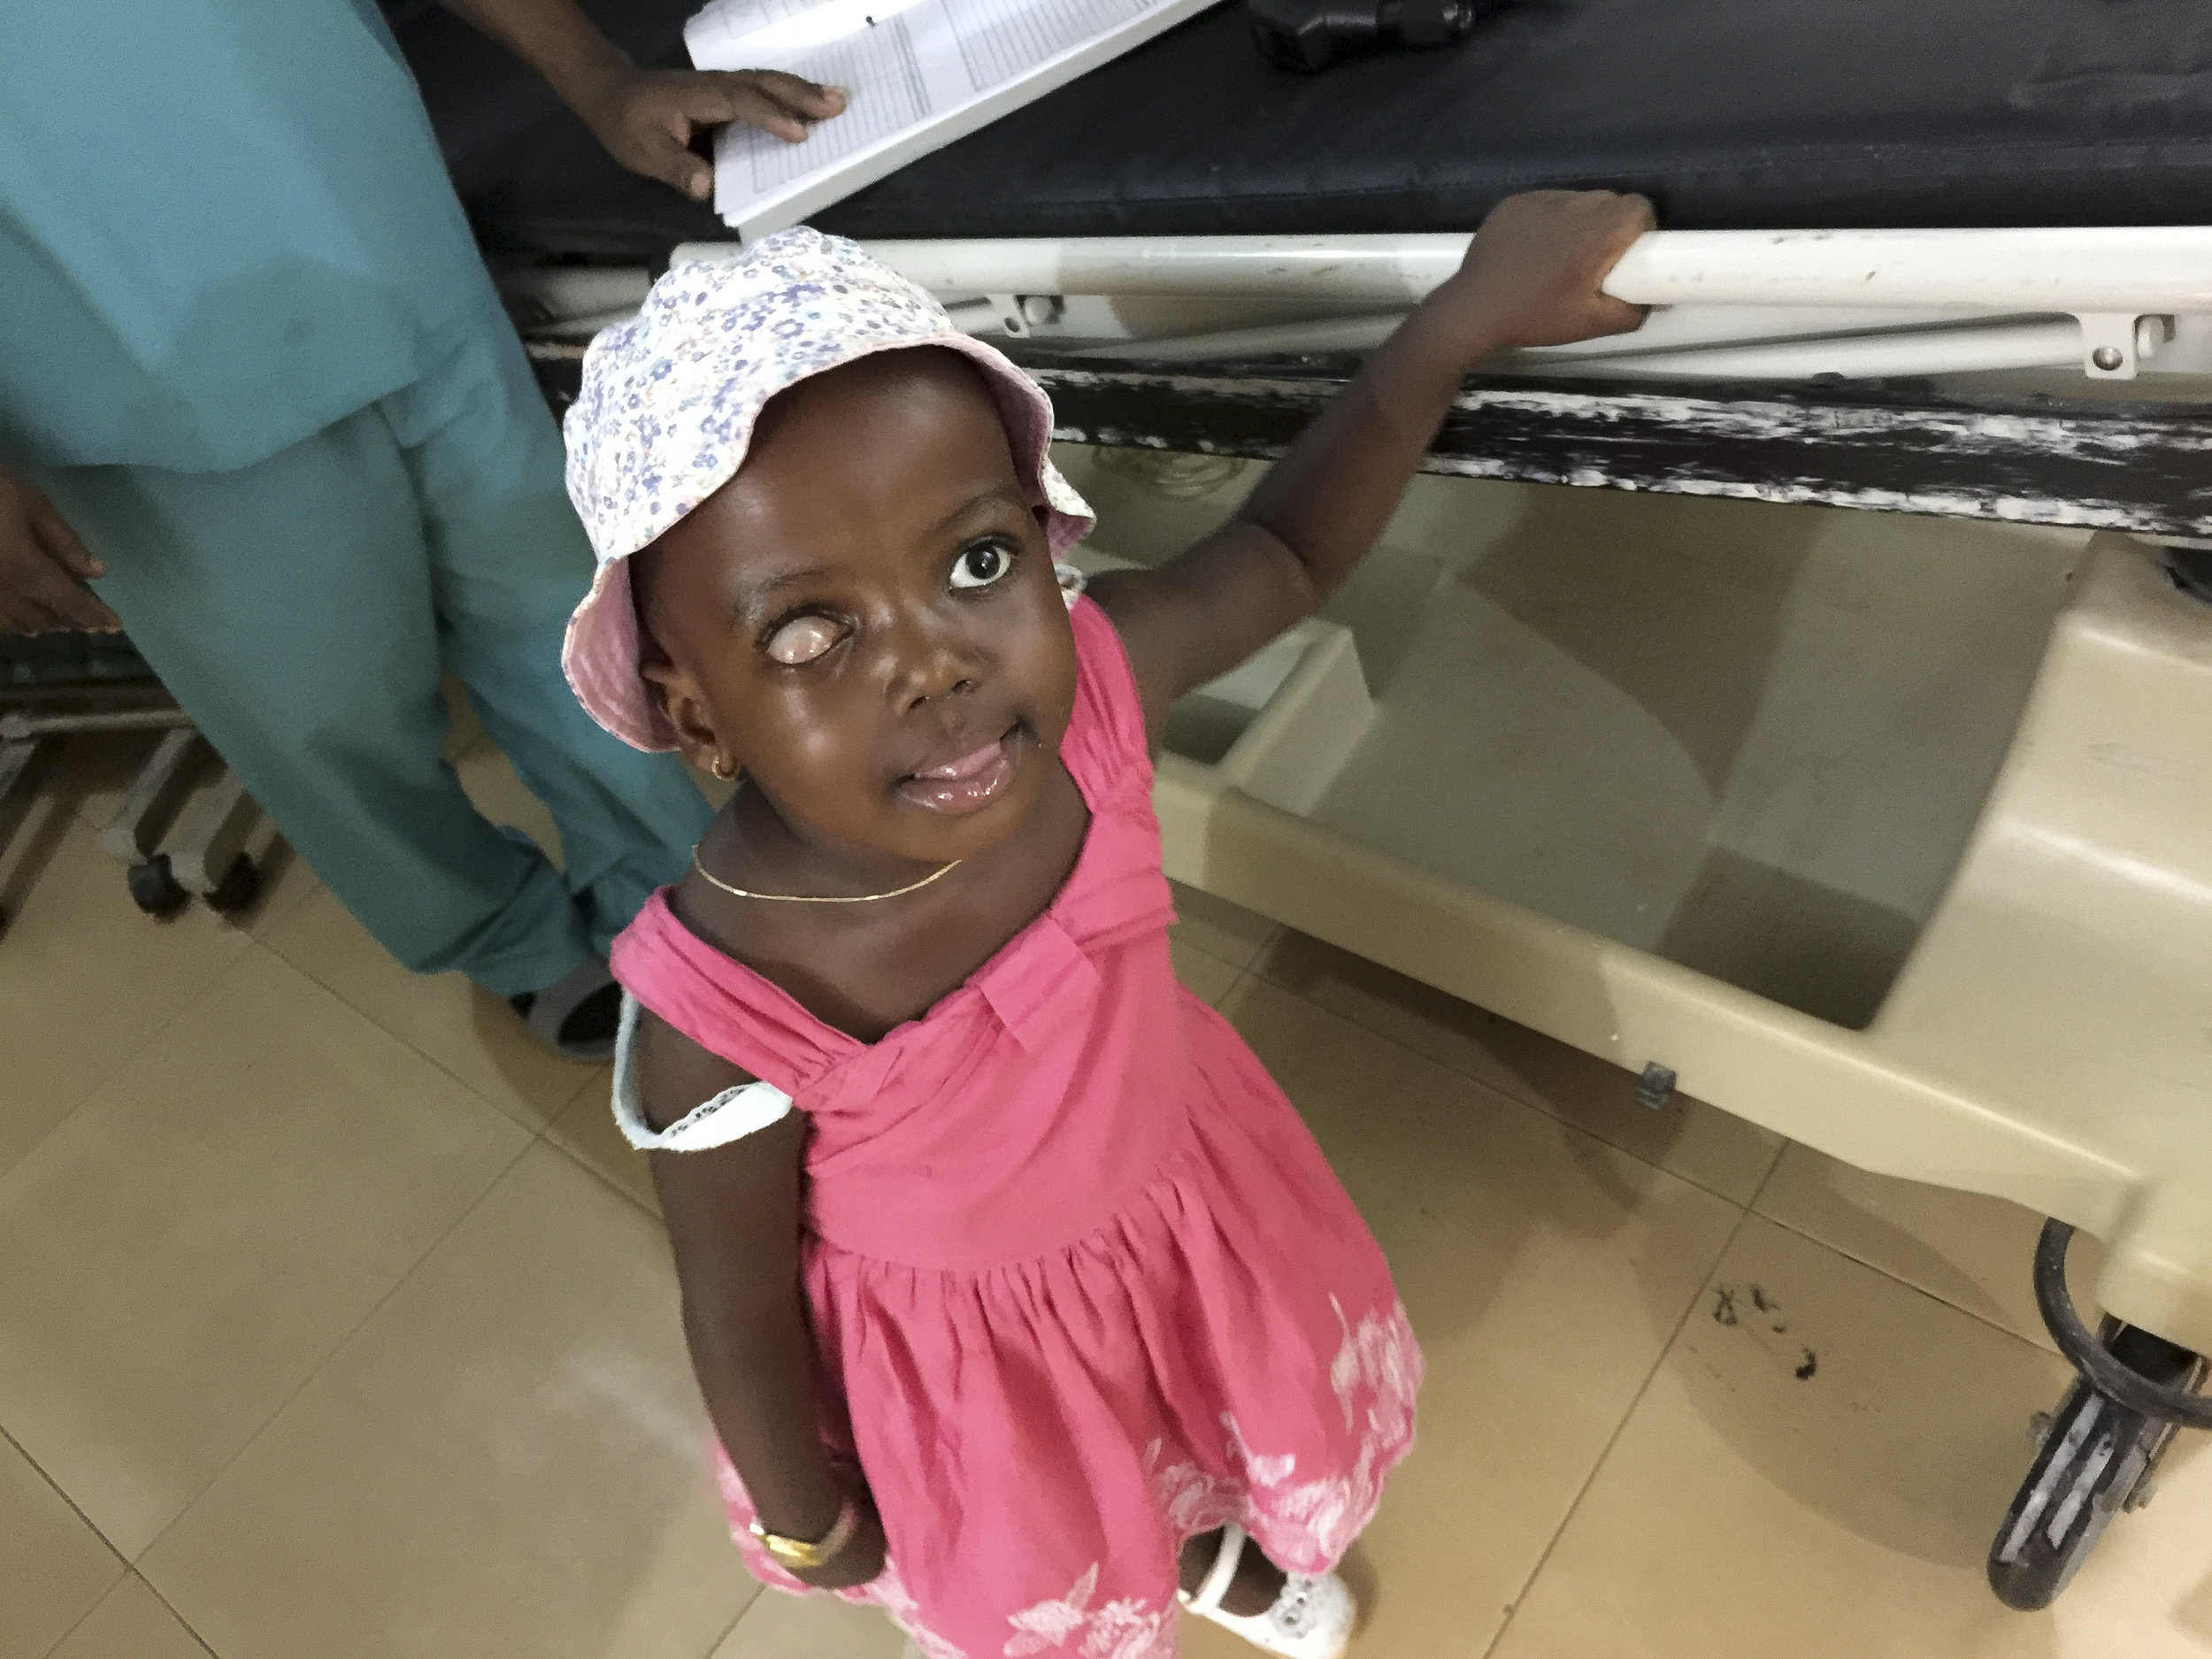 She was all smiles, saying hi to everyone in clinic.